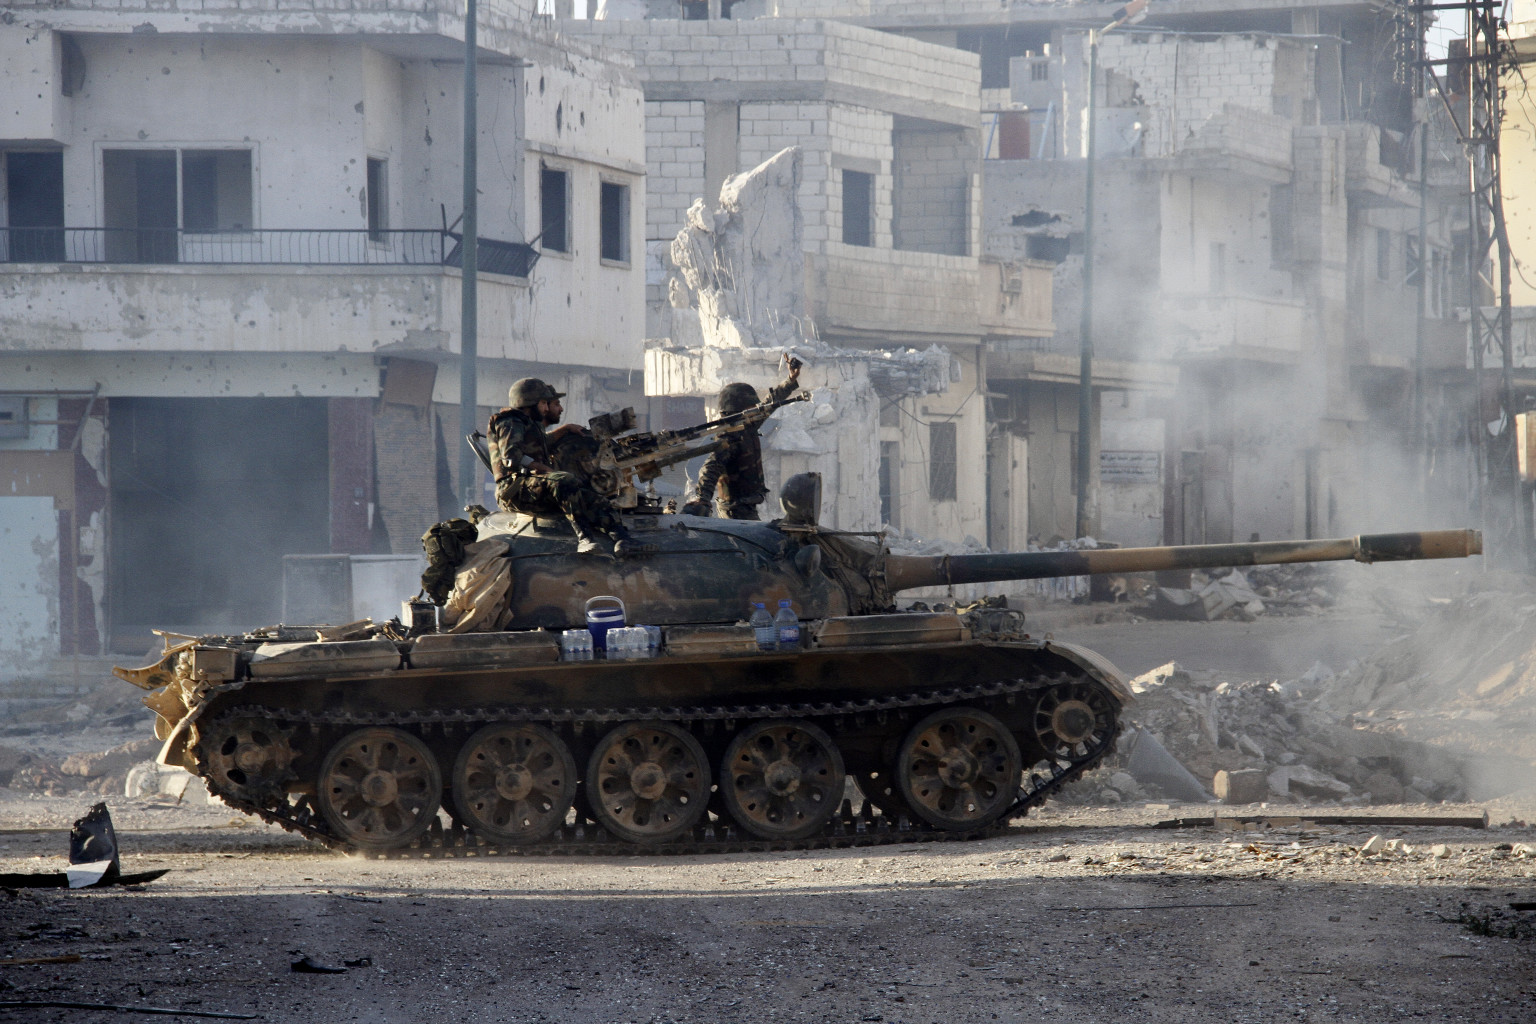 Syria S Army What The West Will Face In Case Of Intervention Huffpost